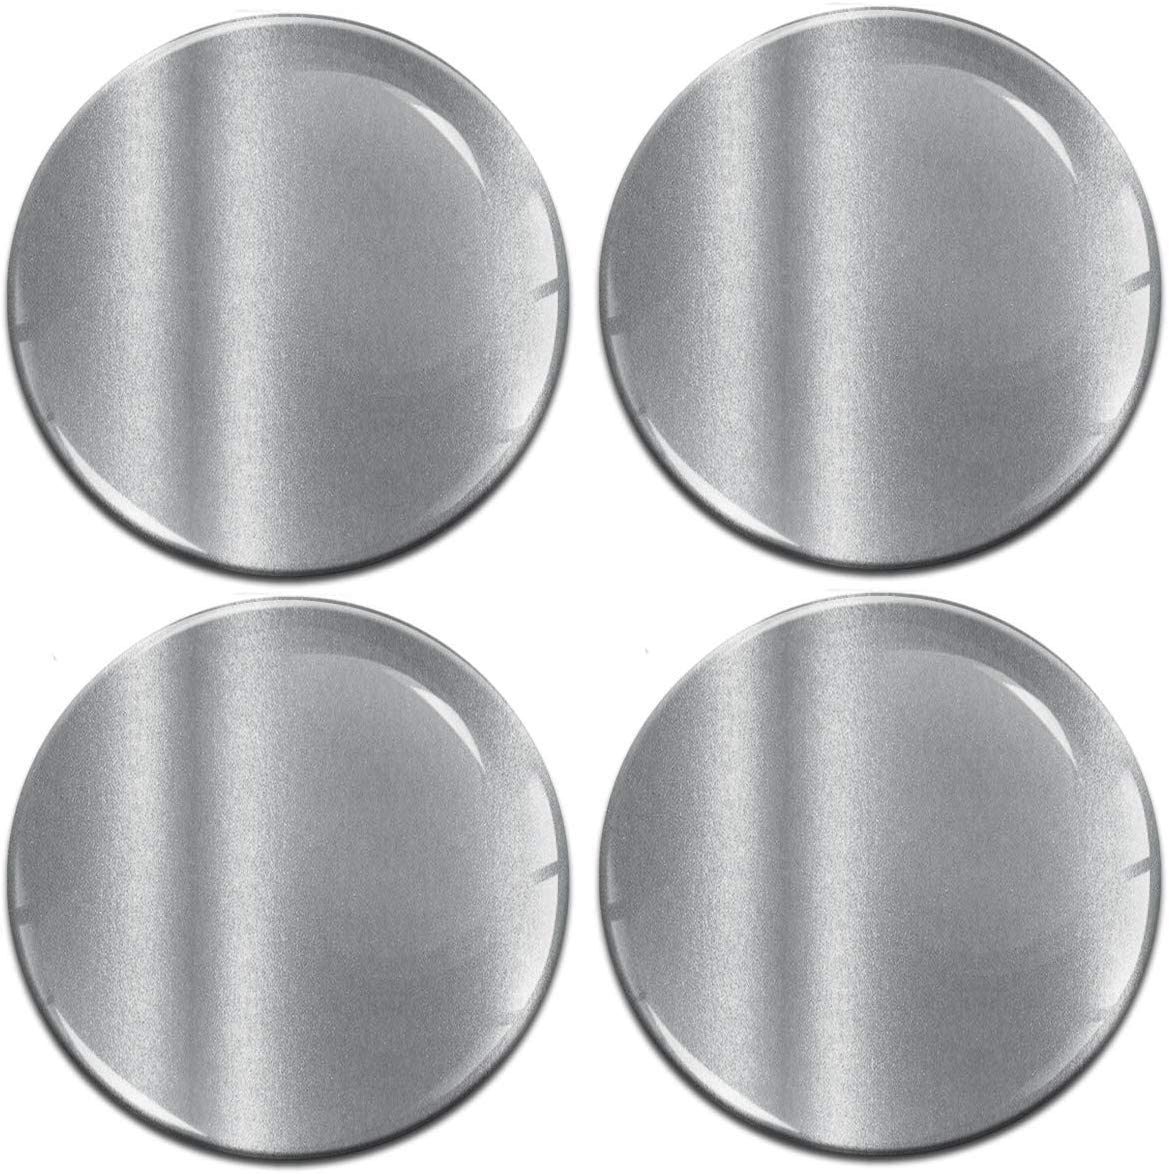 4 x 70mm 3D Domed Car Wheel Centre Rims Silver Stickers Decals for Caps Vehicle Auto Tuning Emblem A 9770